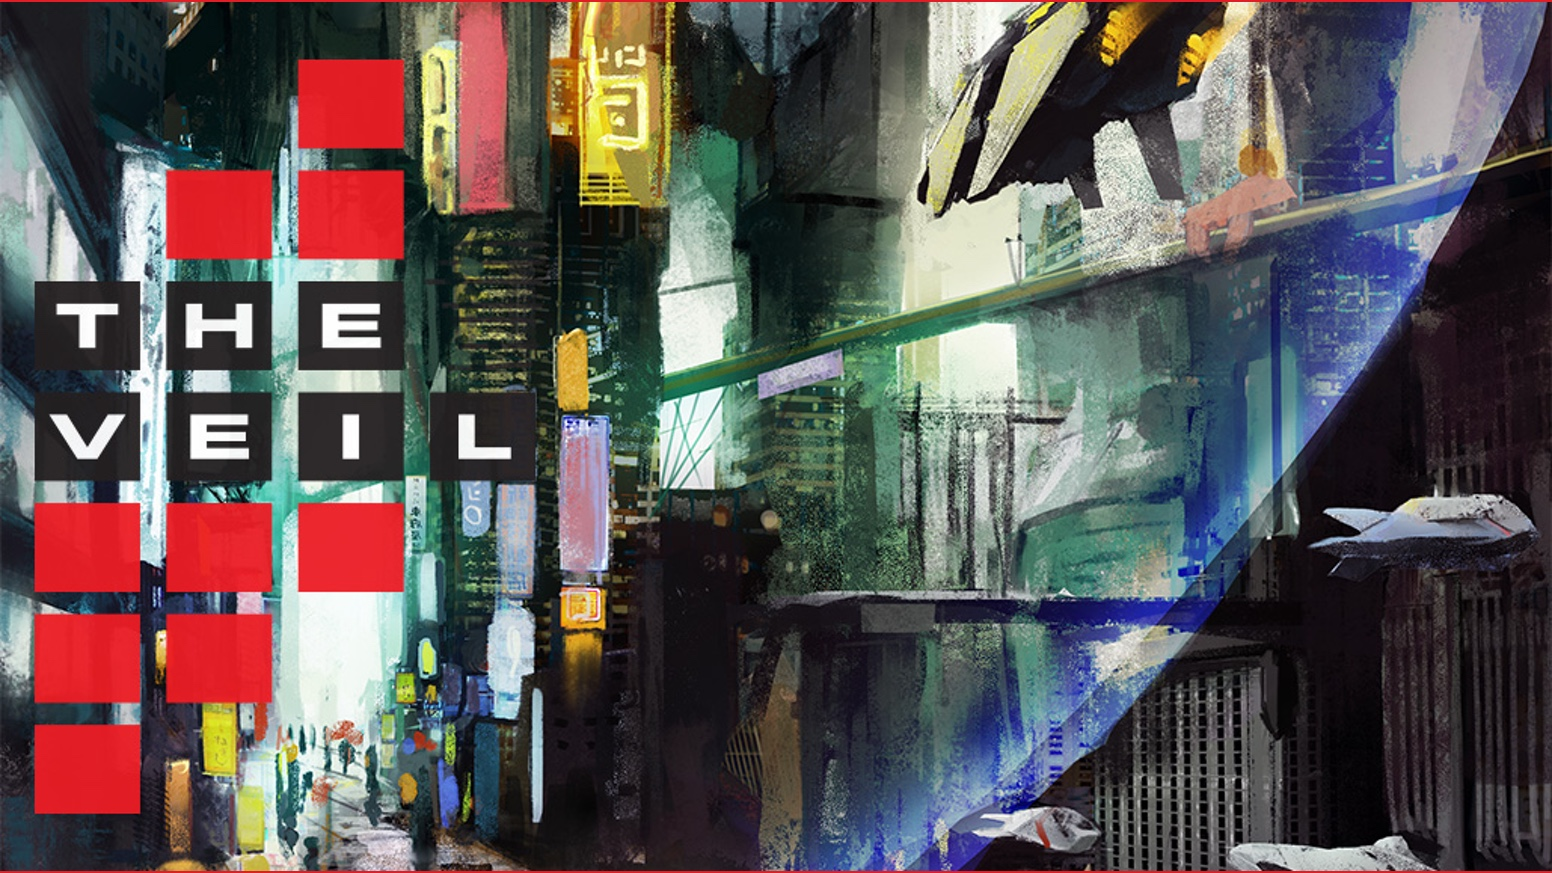 The Veil Cyberpunk Tabletop Game